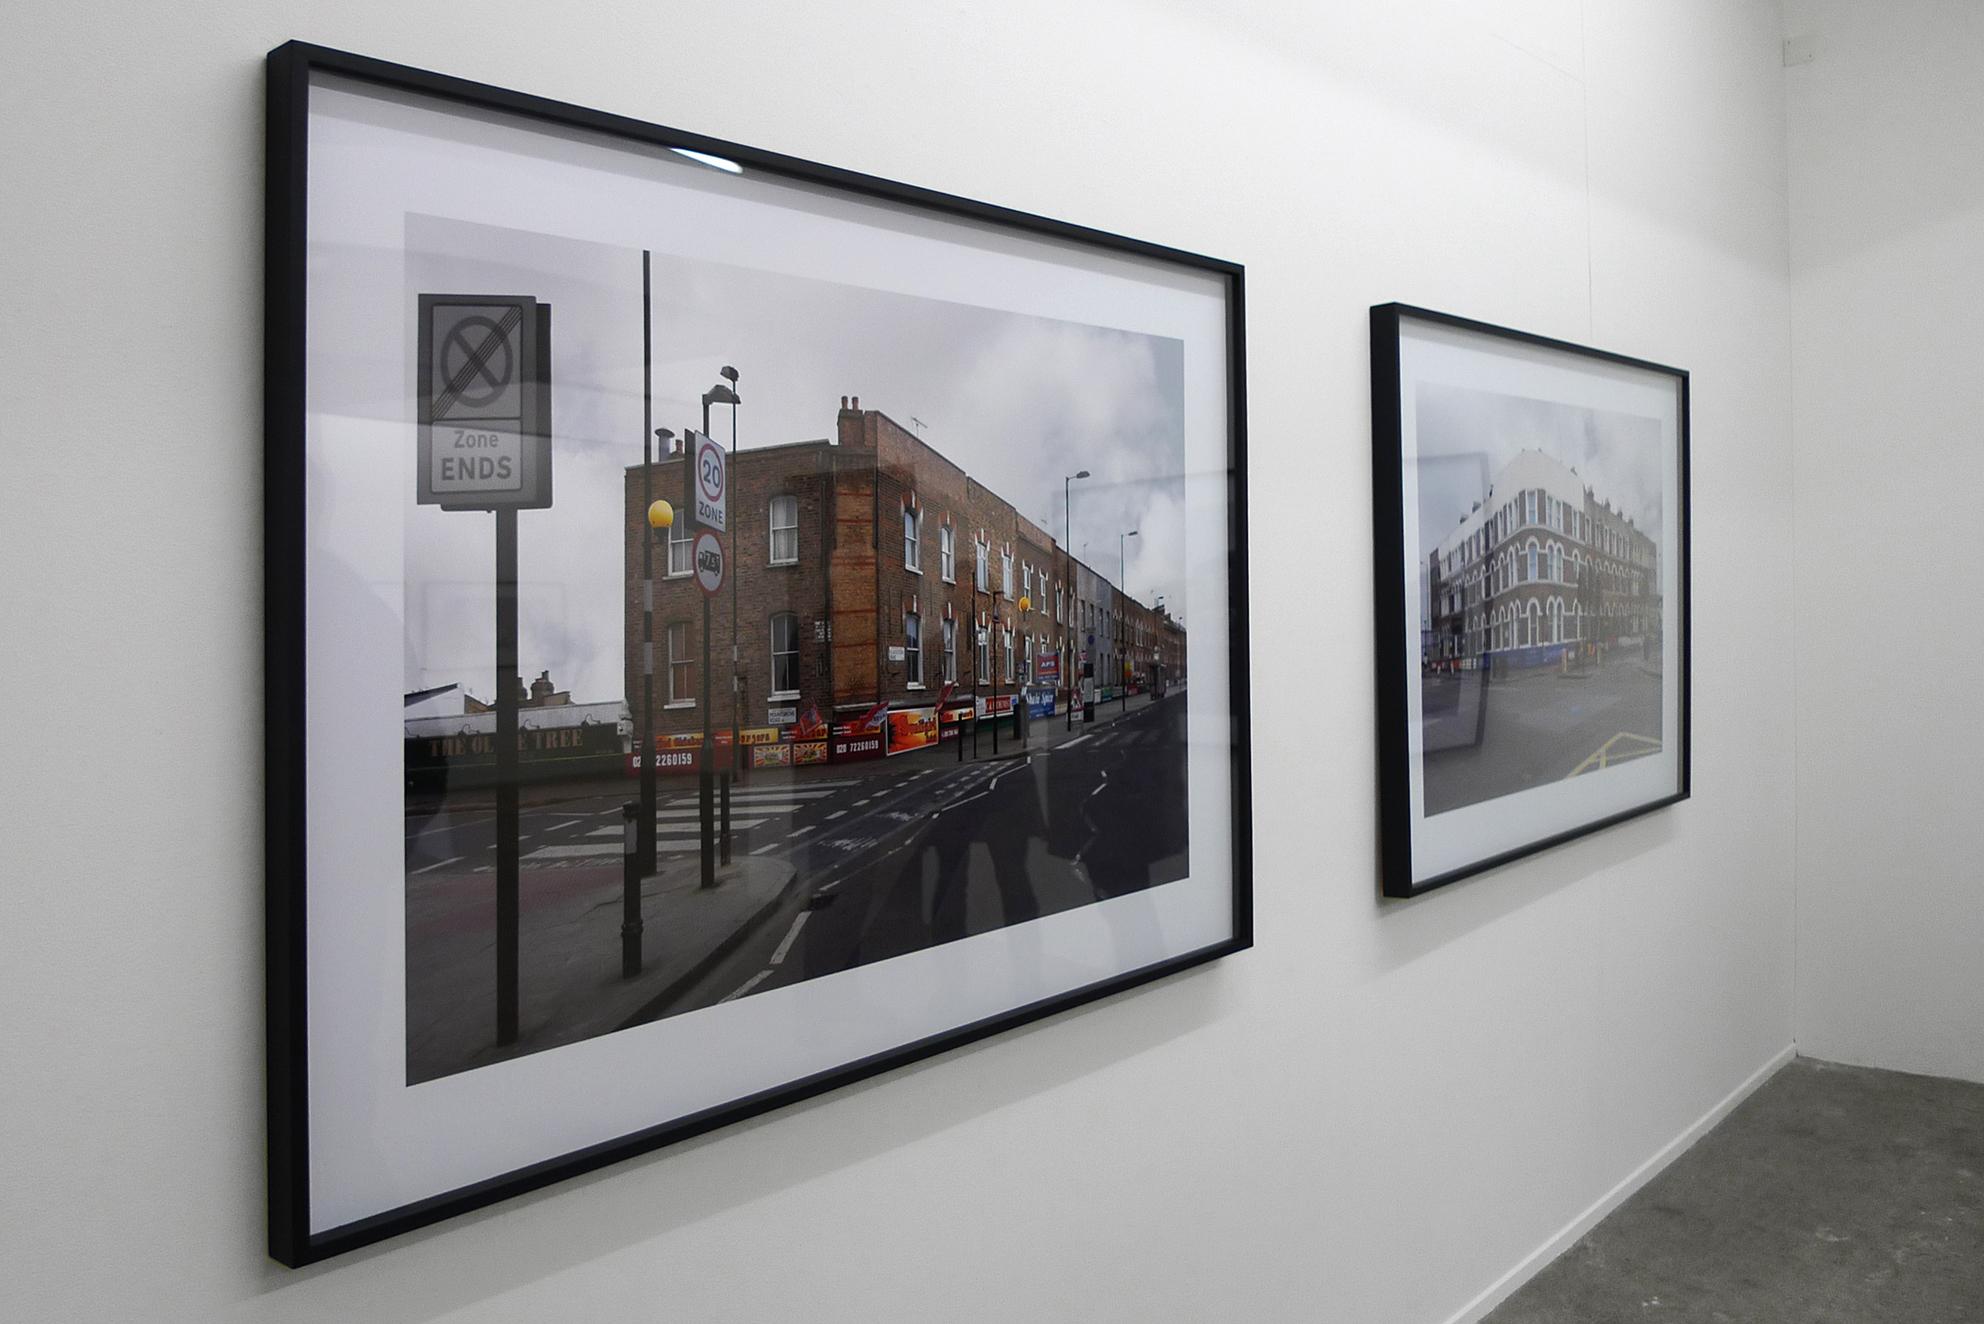 Finsbury, Blackstock Road, London, series of 3 photographs, inkjet print / black wooden frame and glass, 104 x 150 x 4 cm, 2011